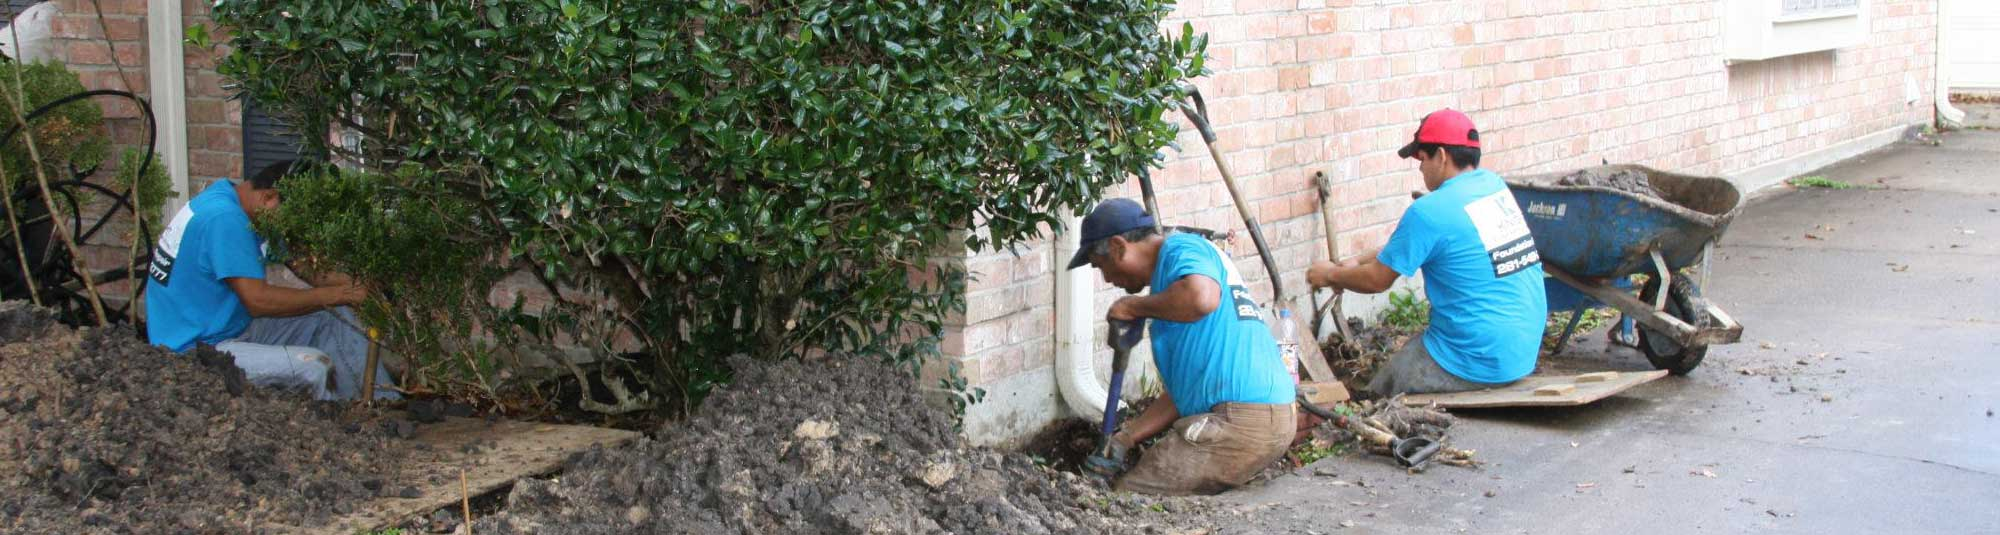 Foundation repair Houston, TX Specialists Address Many Common Foundation Problems Effectively